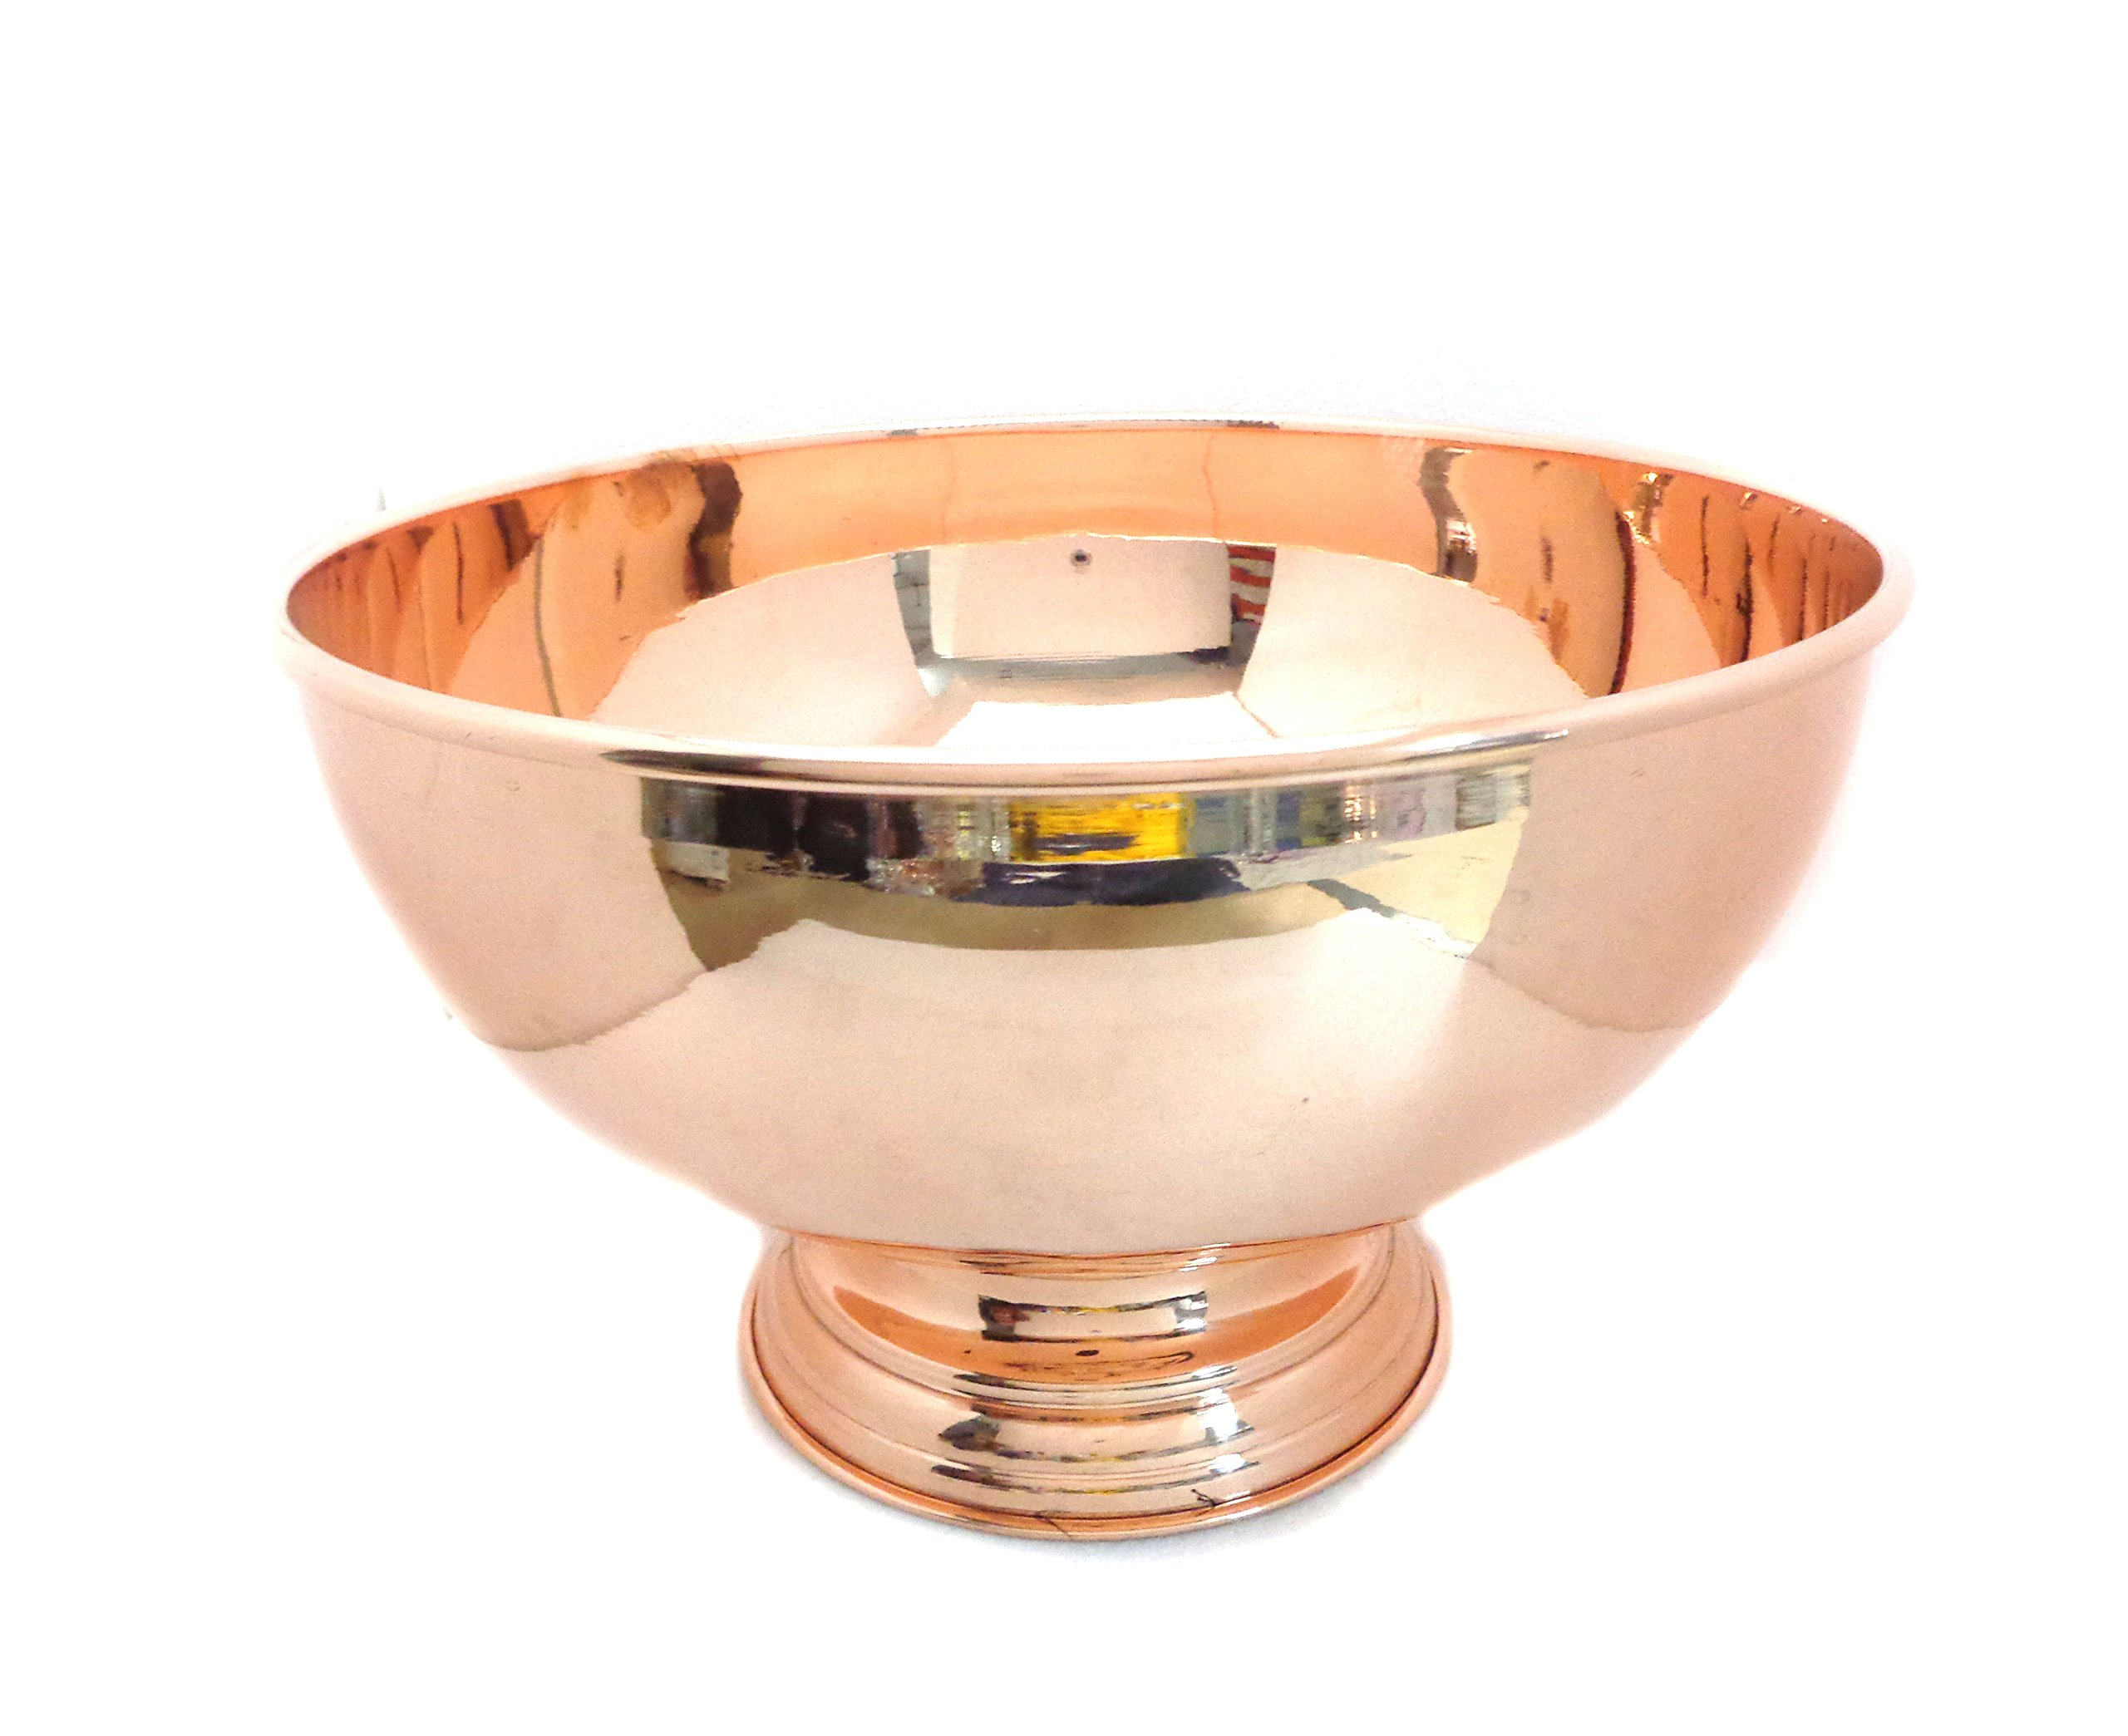 Copper Punch Bowl 12'' - 100% Pure Copper Punch Bowl (6 LITER CAPACITY) by Alchemade